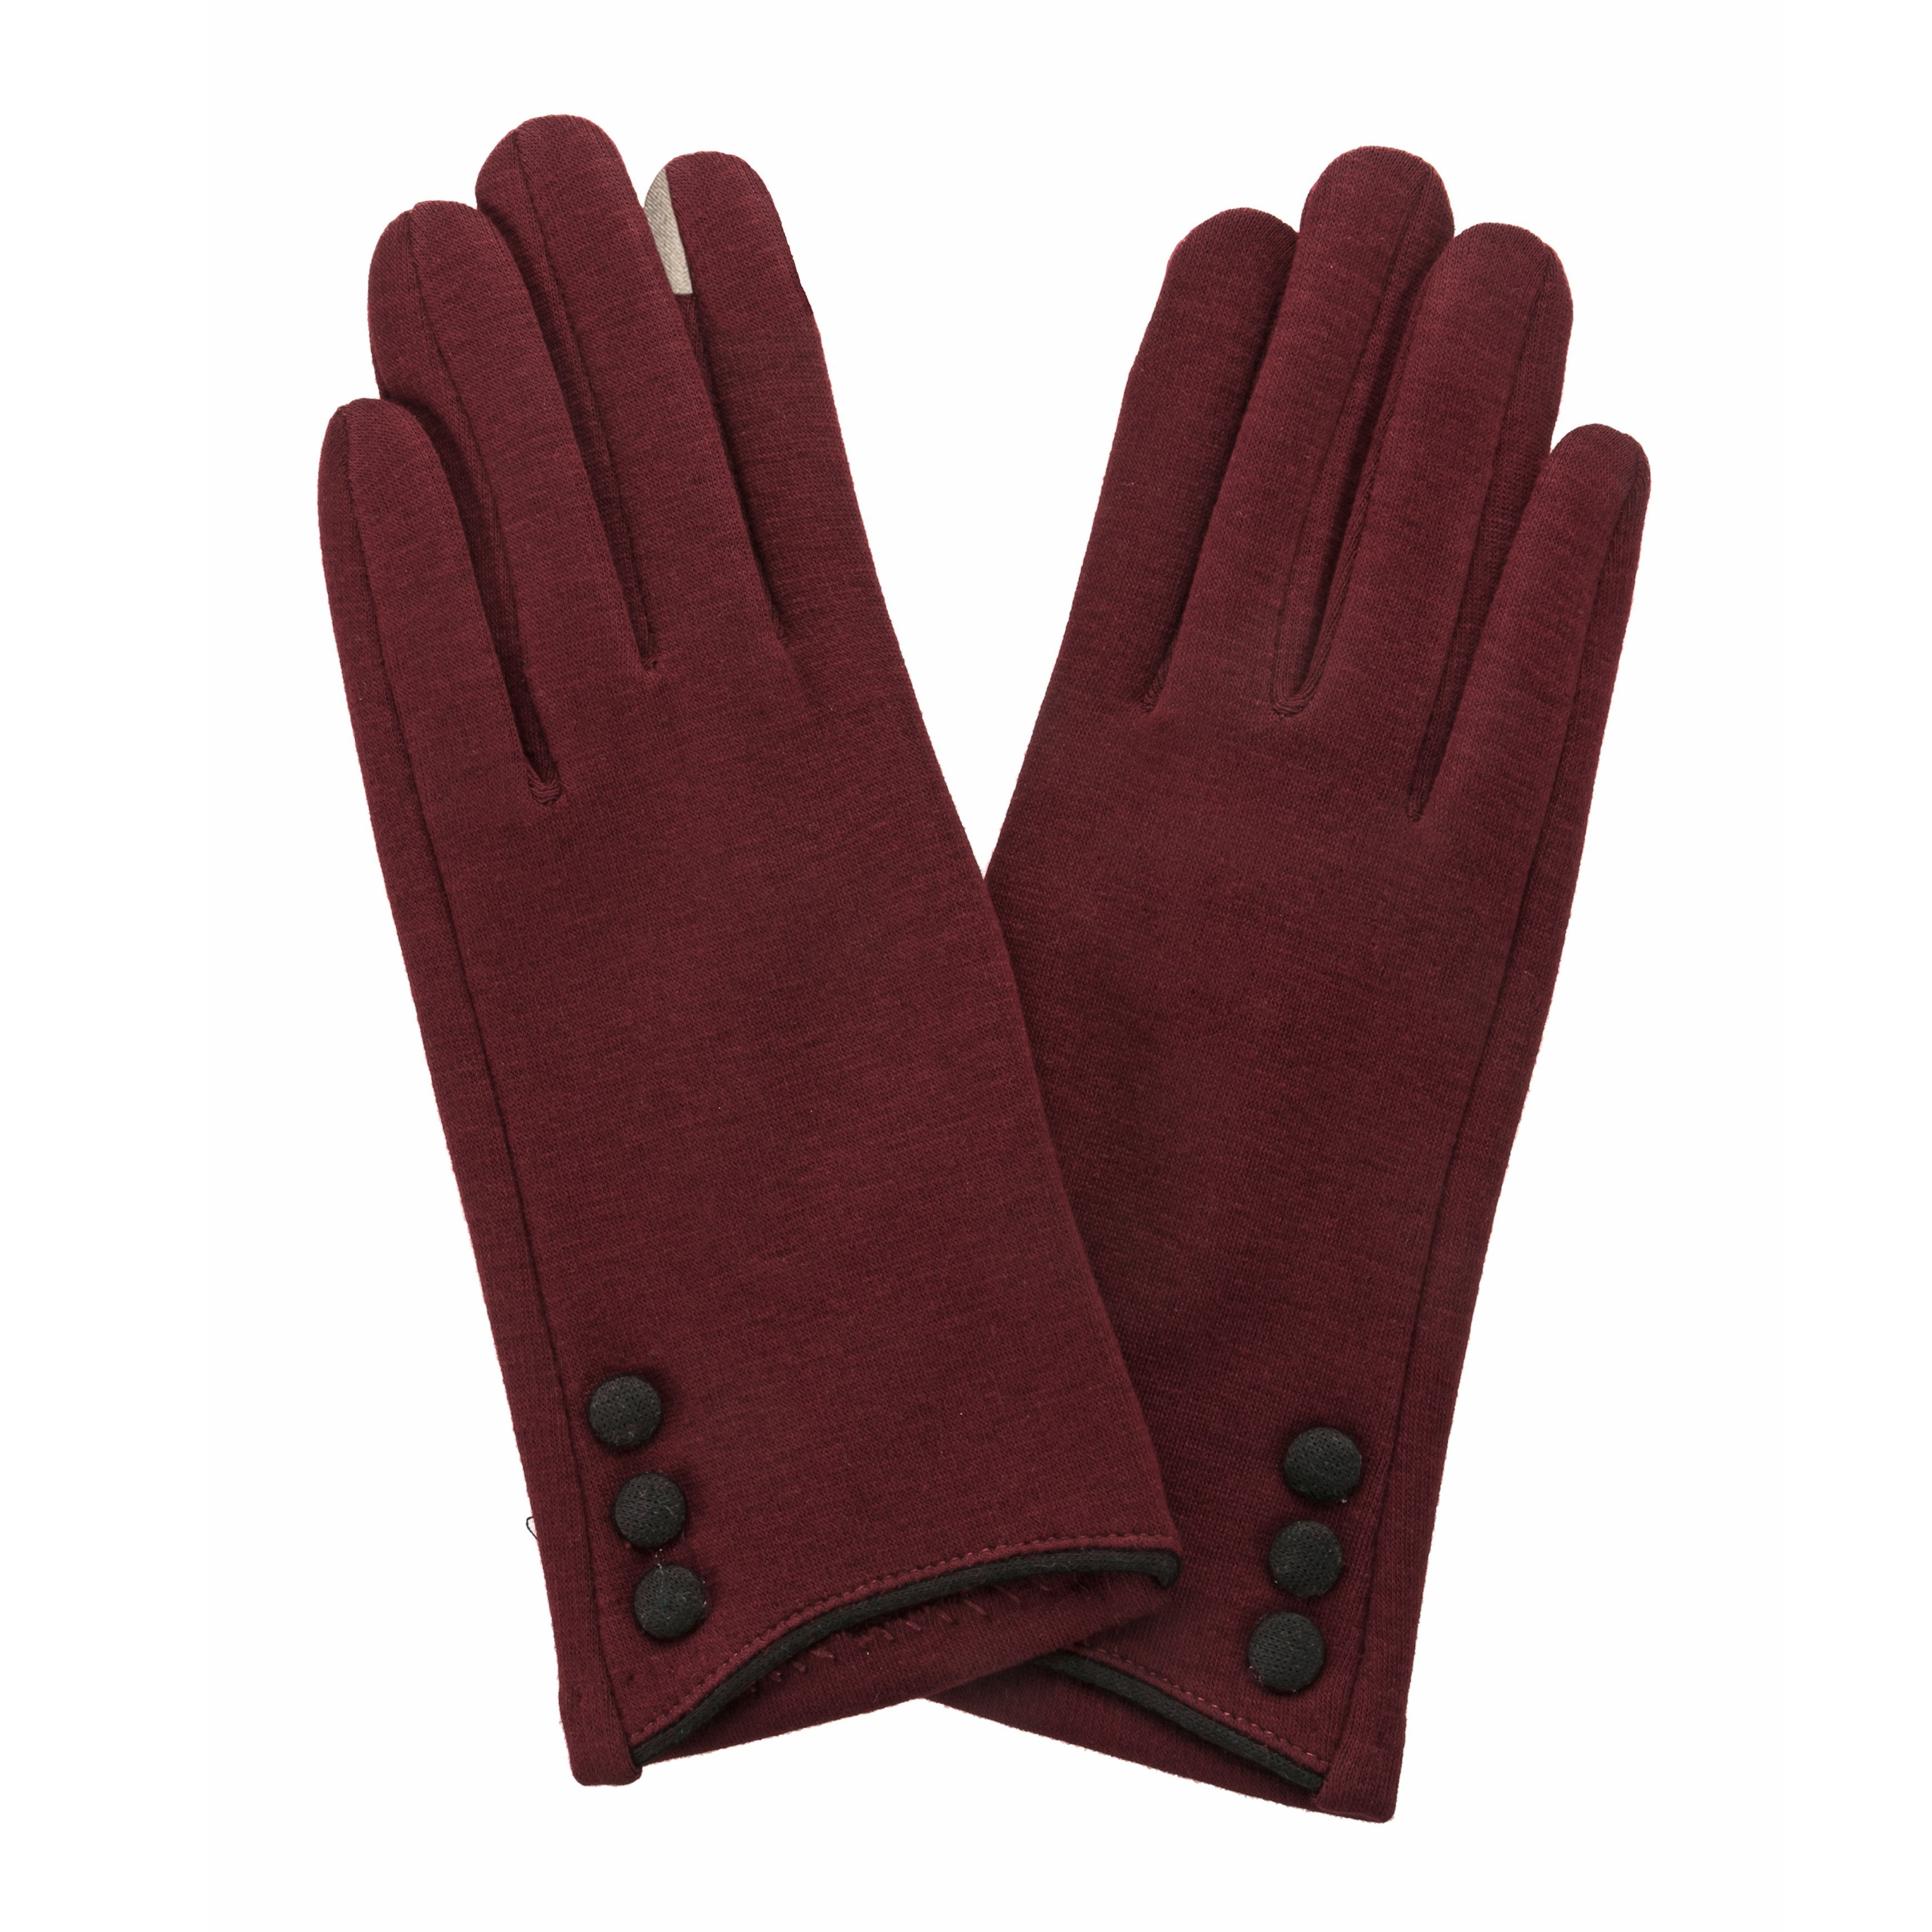 Maroon, smart screen fingertip gloves with black buttons and trim.